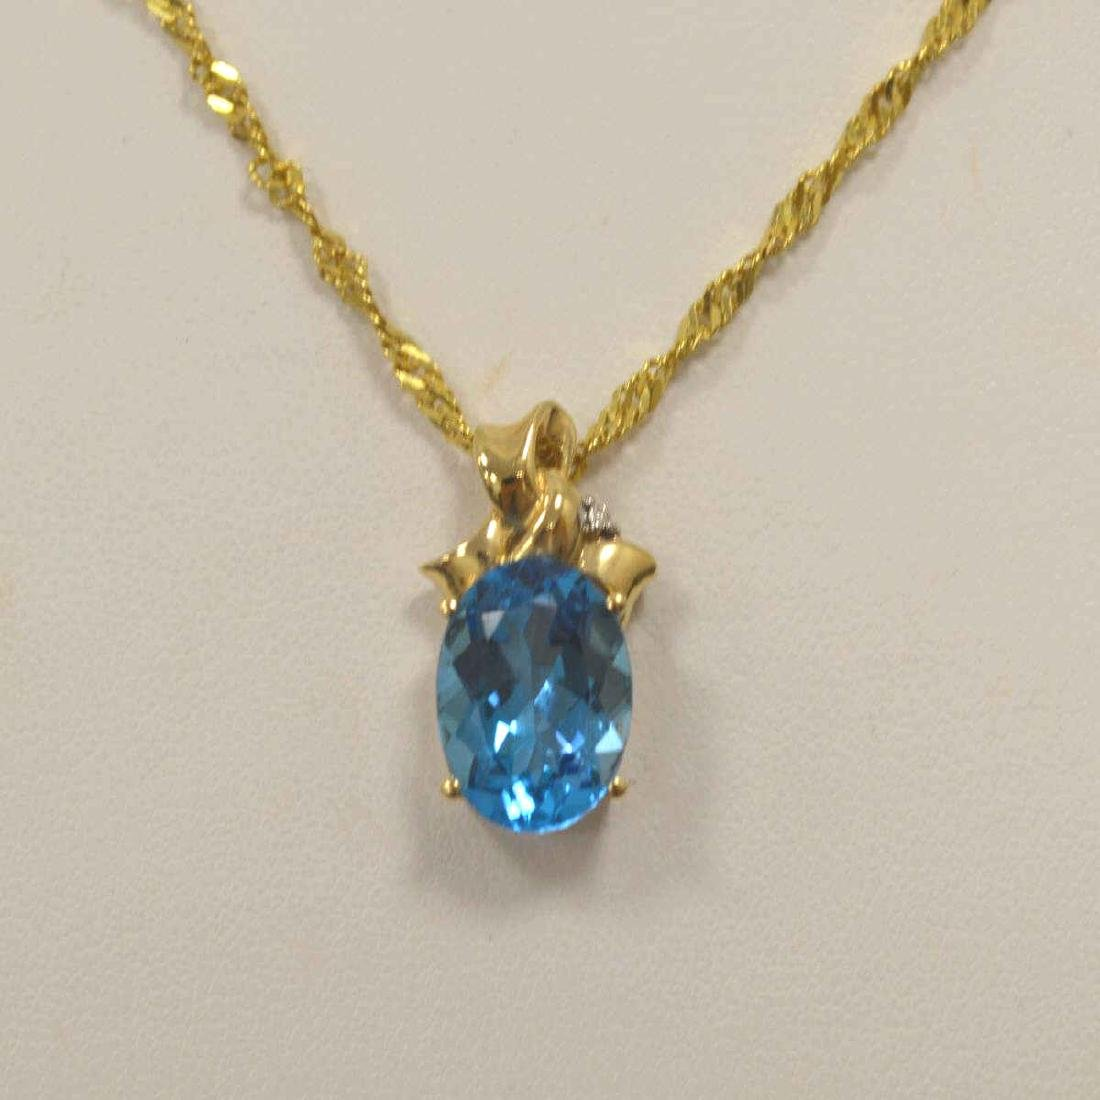 14kt yellow gold blue topaz necklace - 2